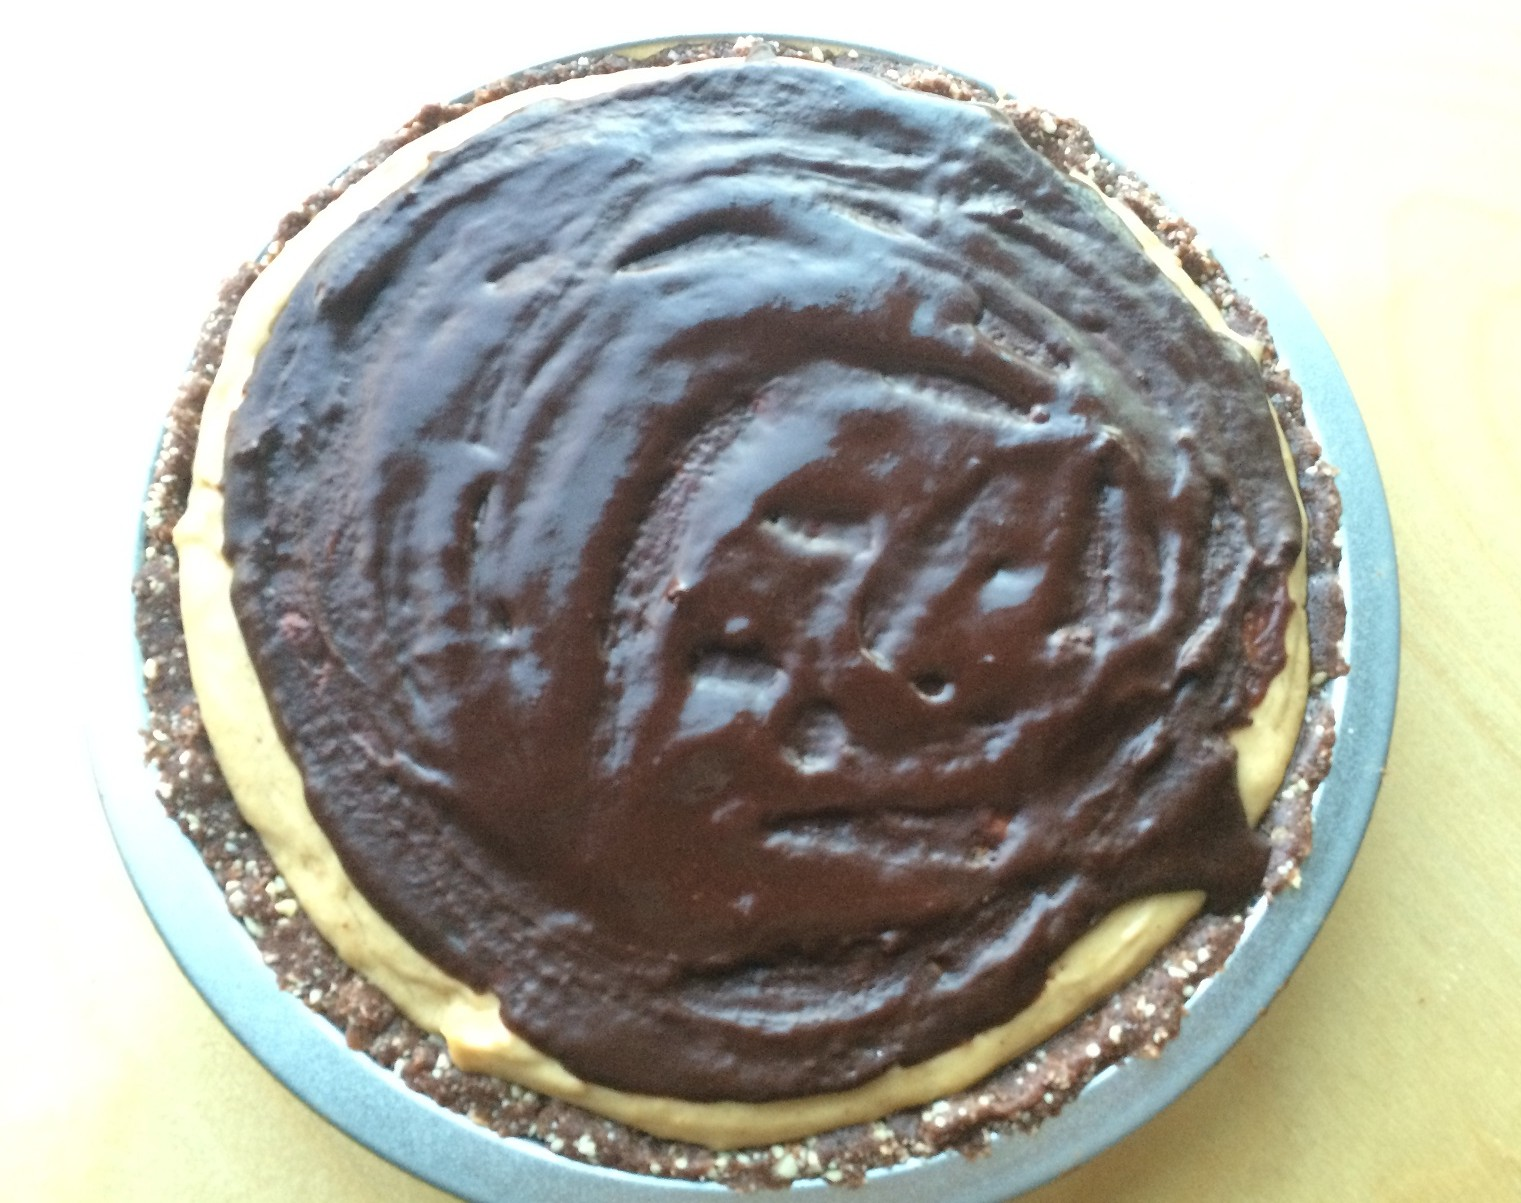 Chocolate Peanut Butter Pie : Gluten, Dairy and Refined ...